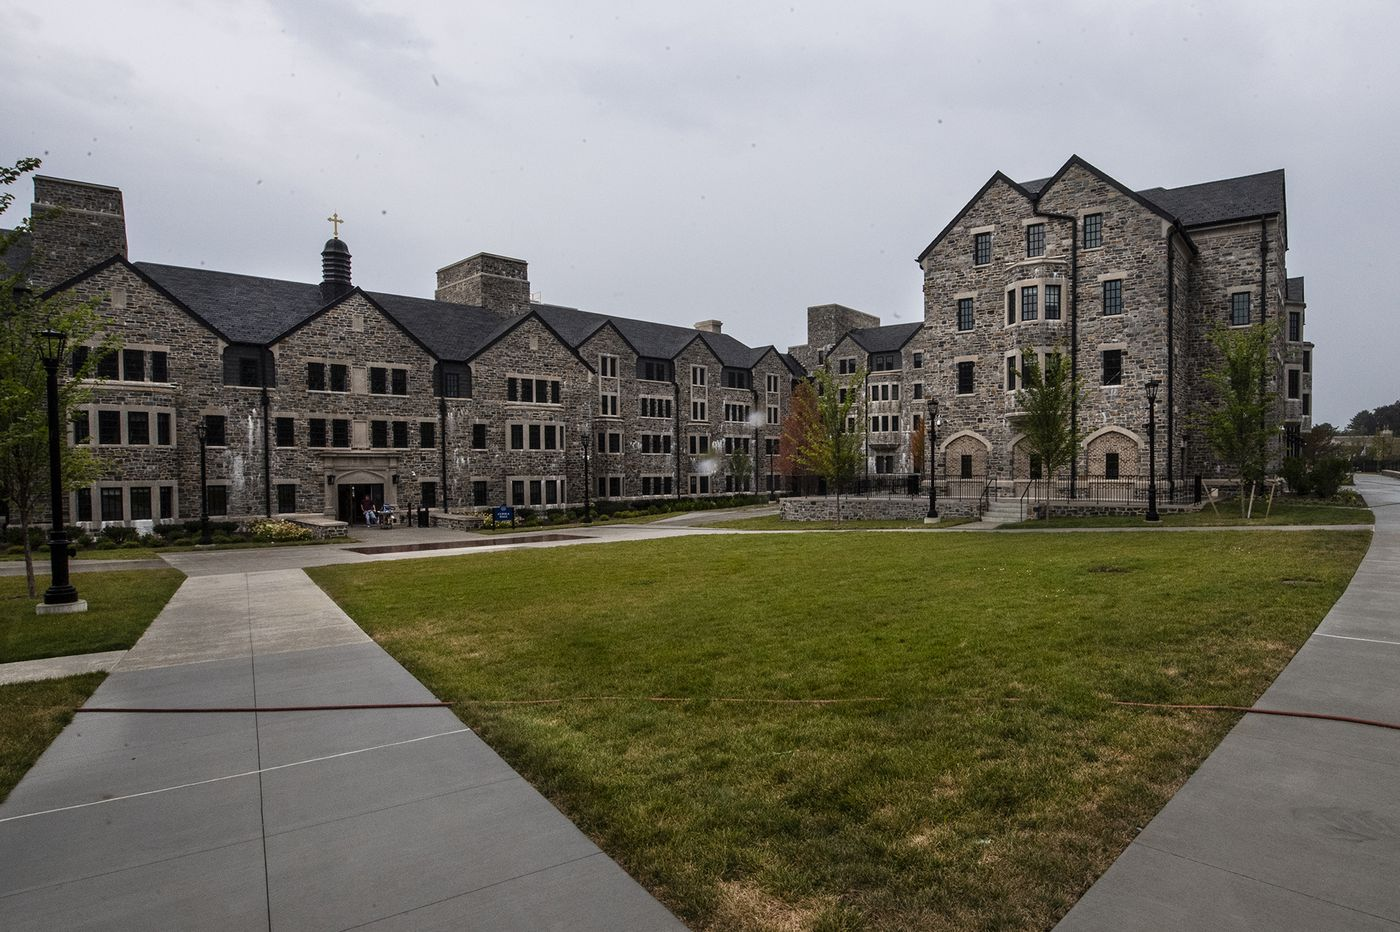 More than eight years in the making, Villanova's $225 million residential complex opens this month